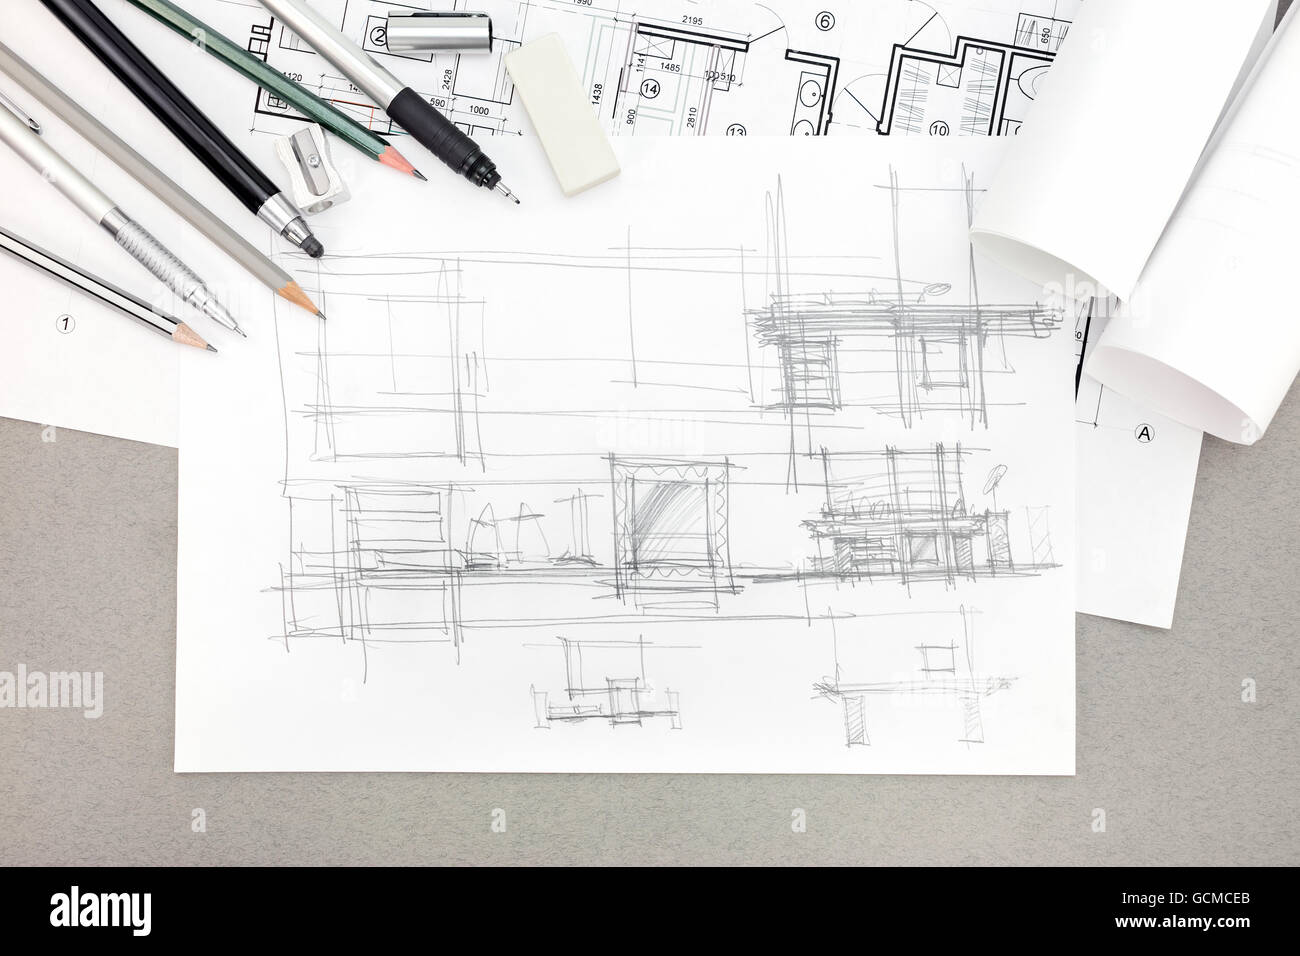 Concept Of Home Renovation Architectural Sketch With Drawing Tools Top View